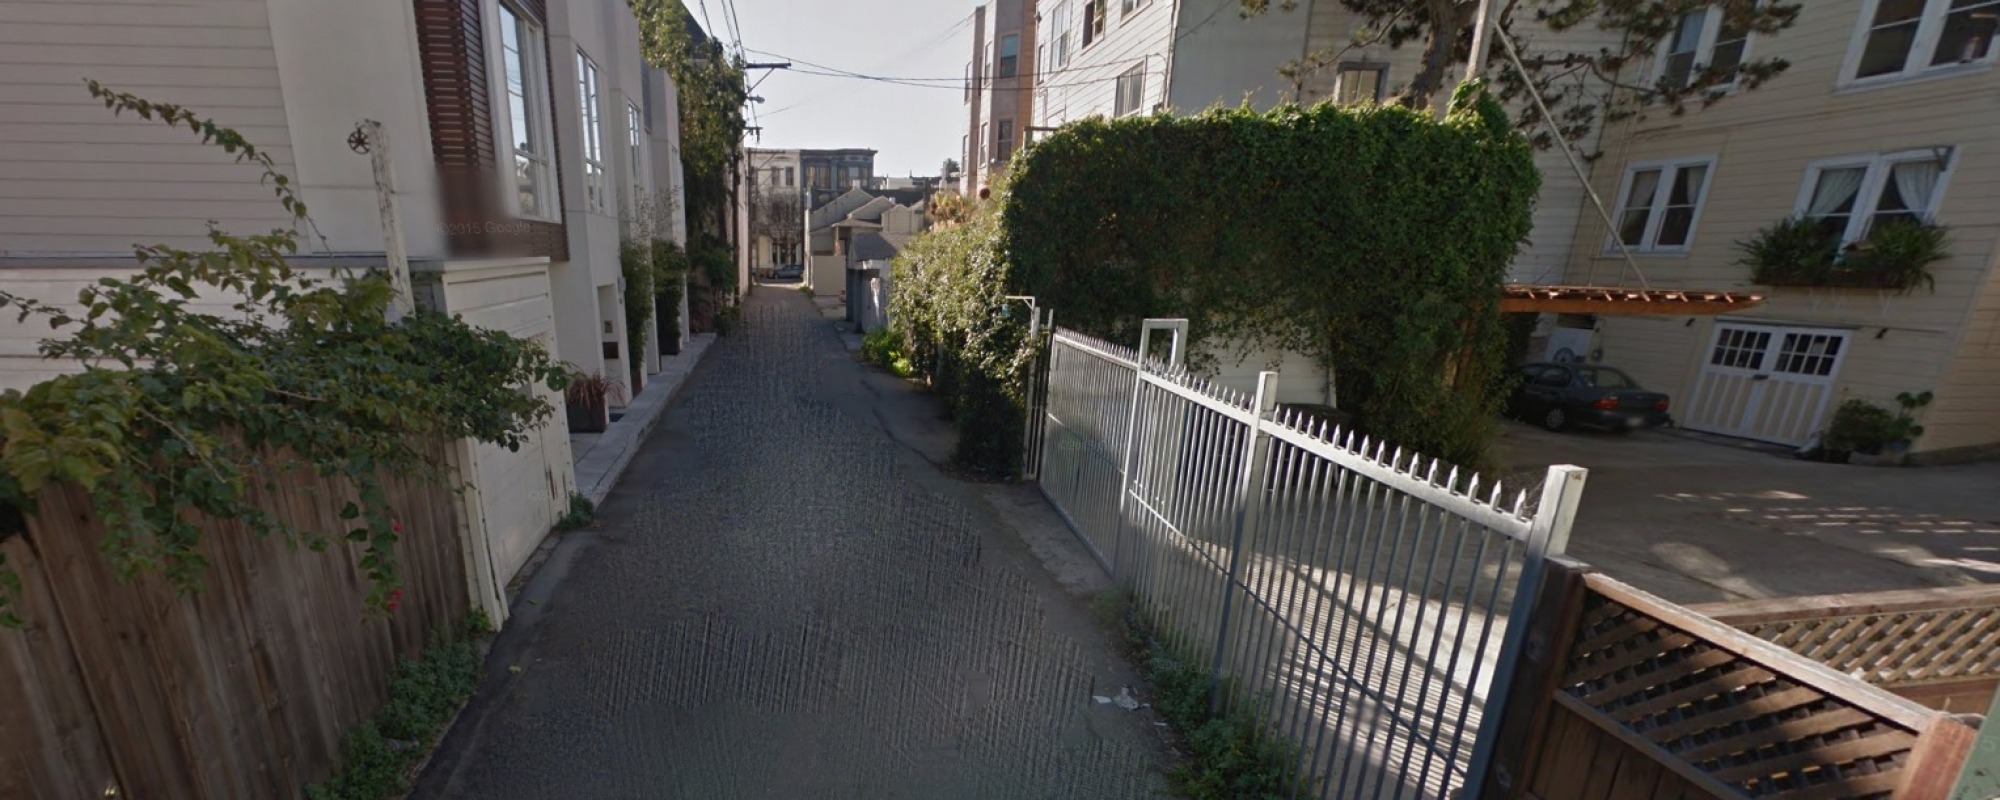 Ames and Quane Alleyway Improvement Project